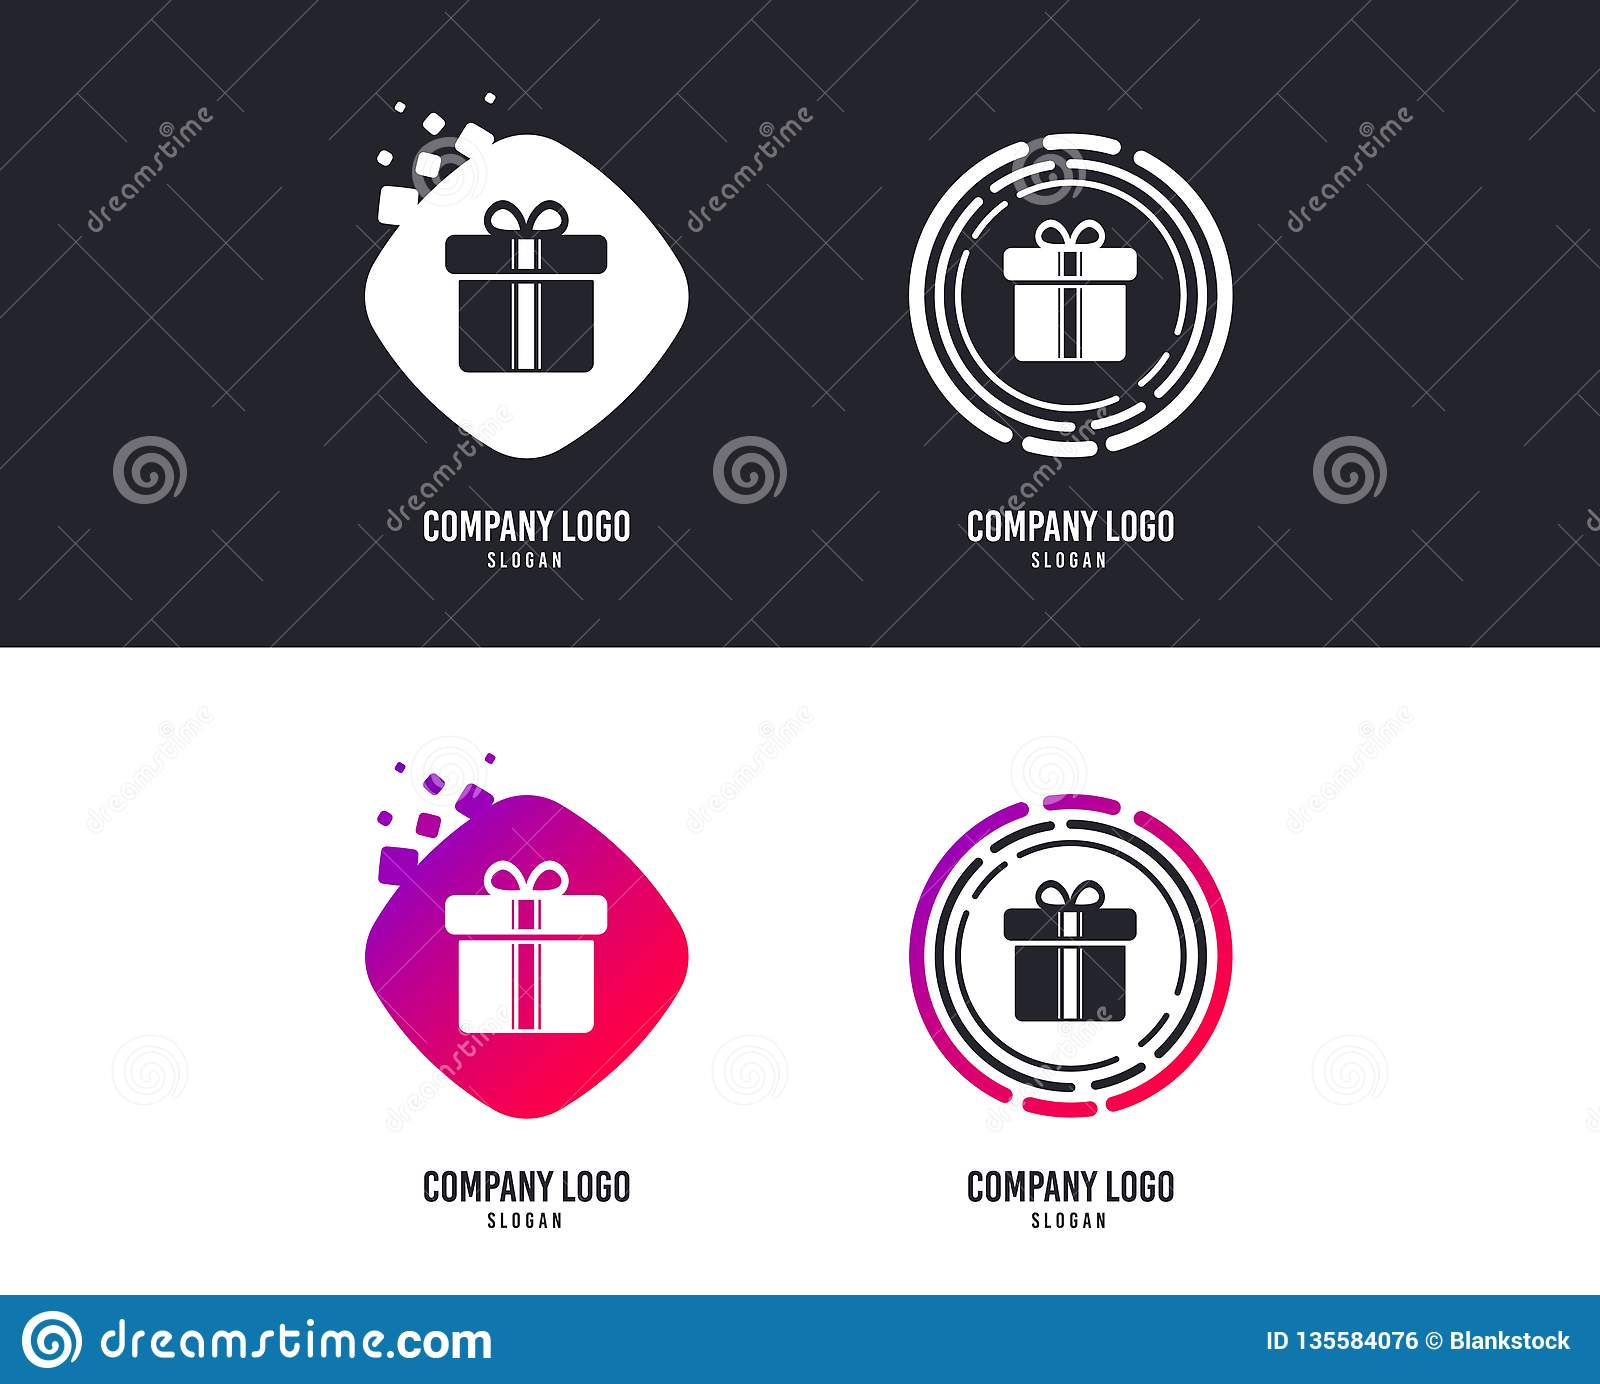 Gift Box Sign Icon Present Symbol Vector Stock Vector Illustration Of Holidays Quality 135584076